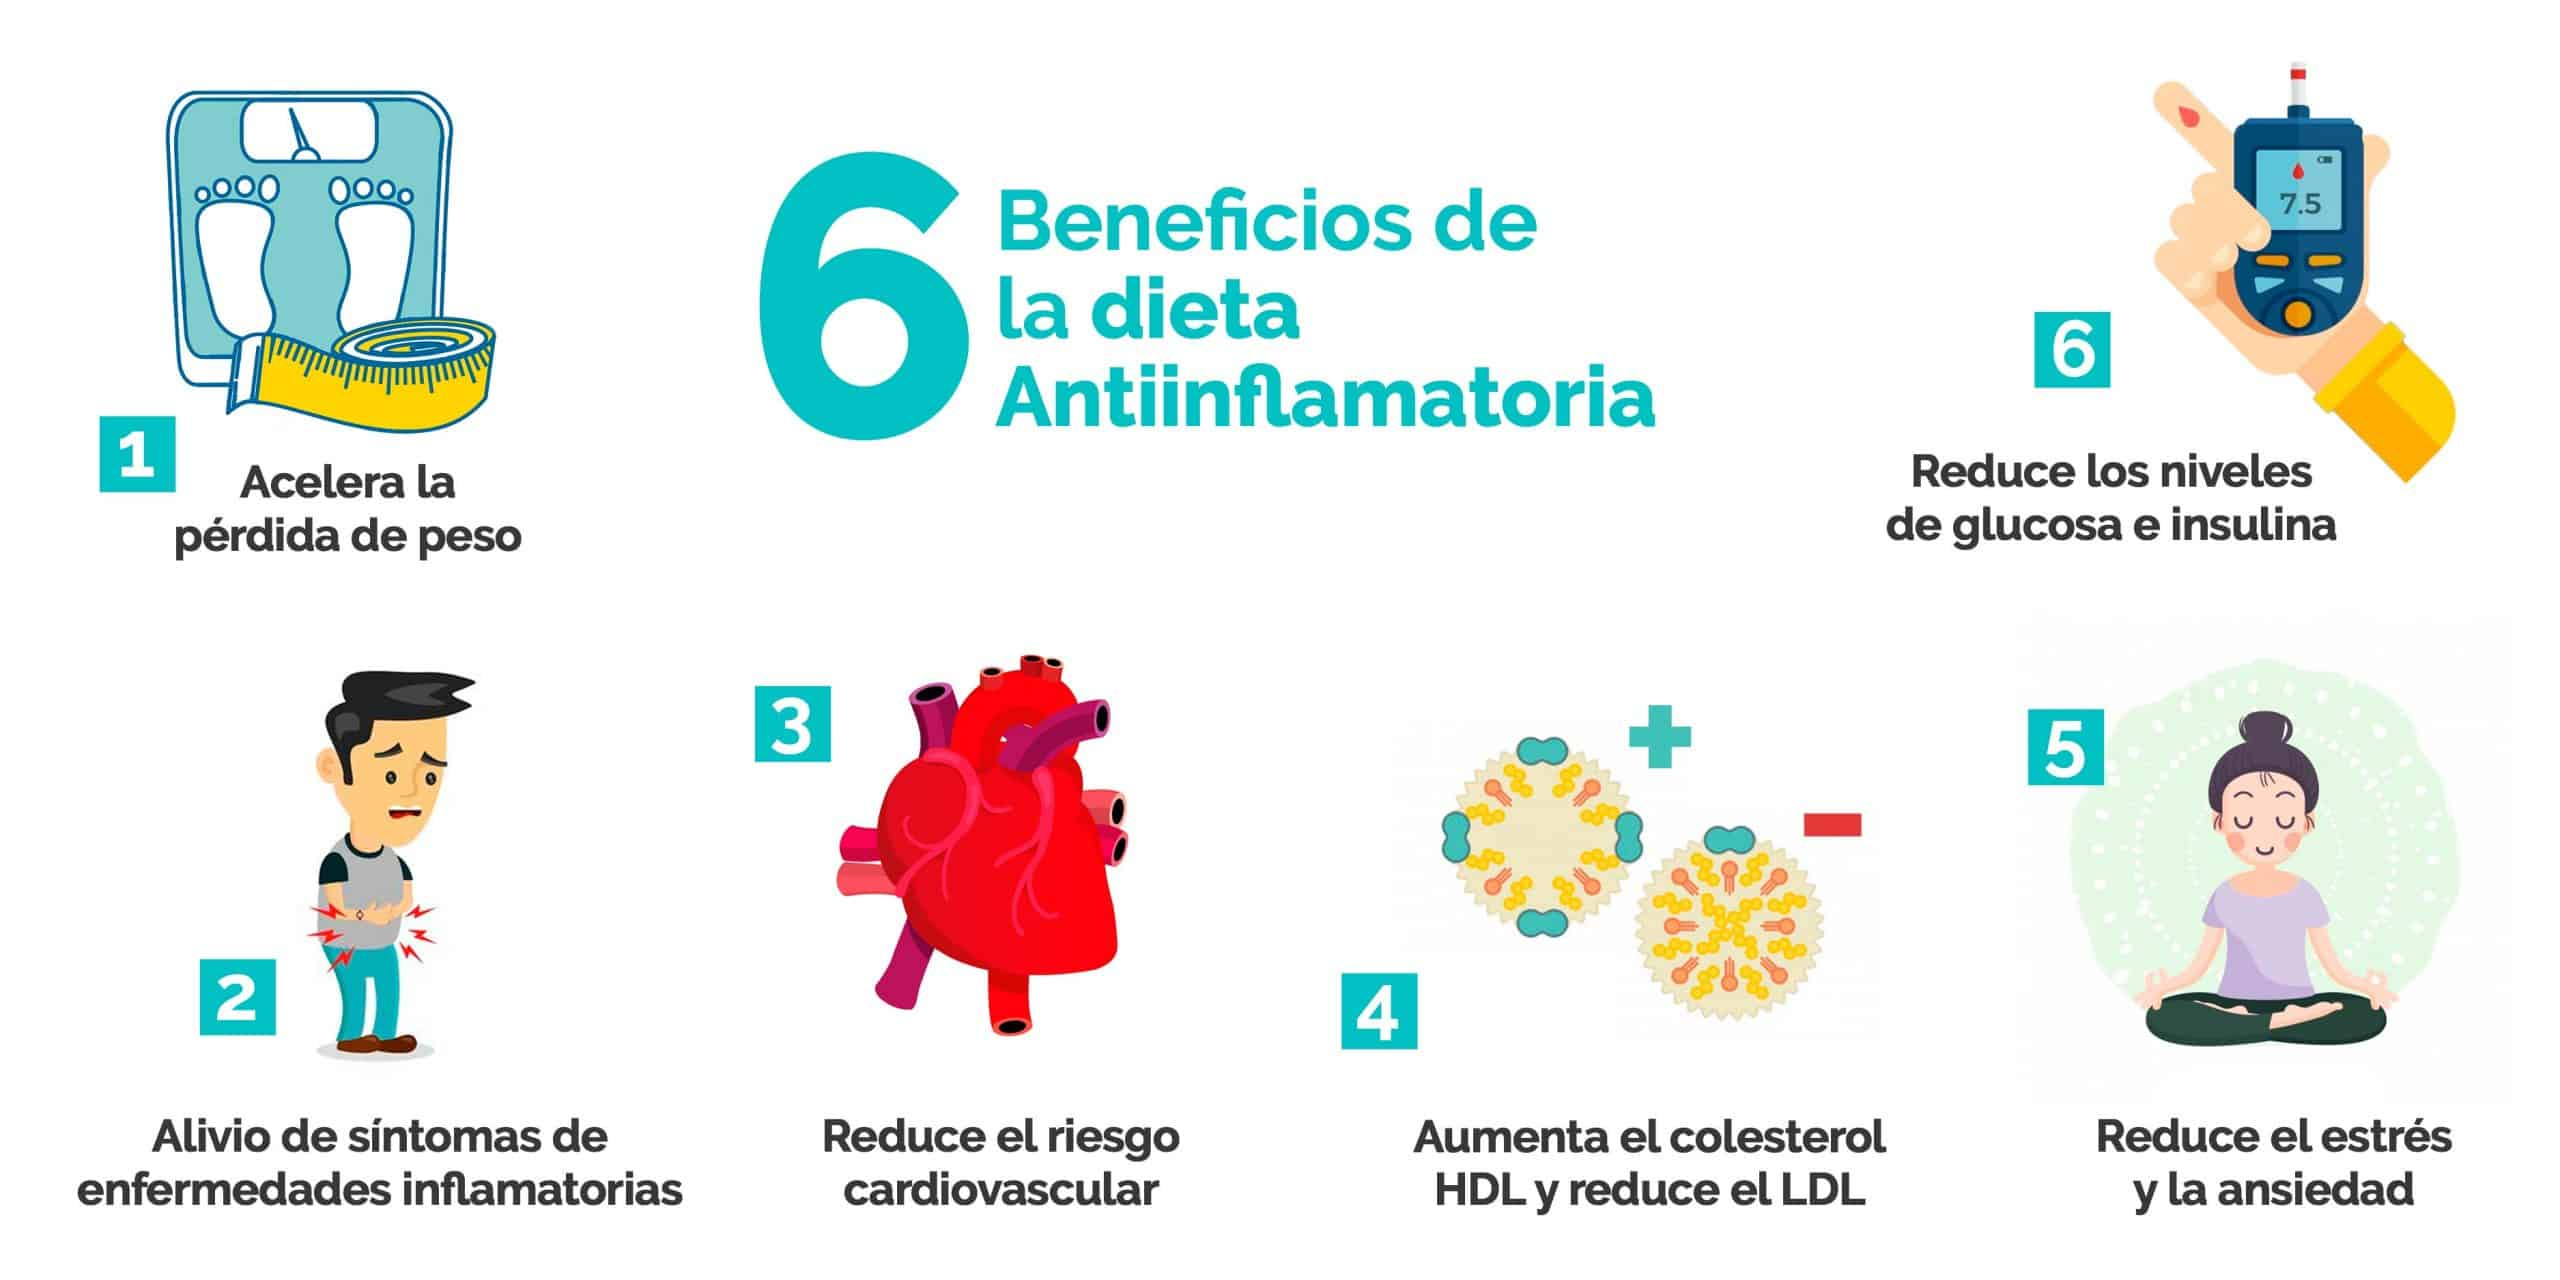 Beneficios dieta antiinflamatoria